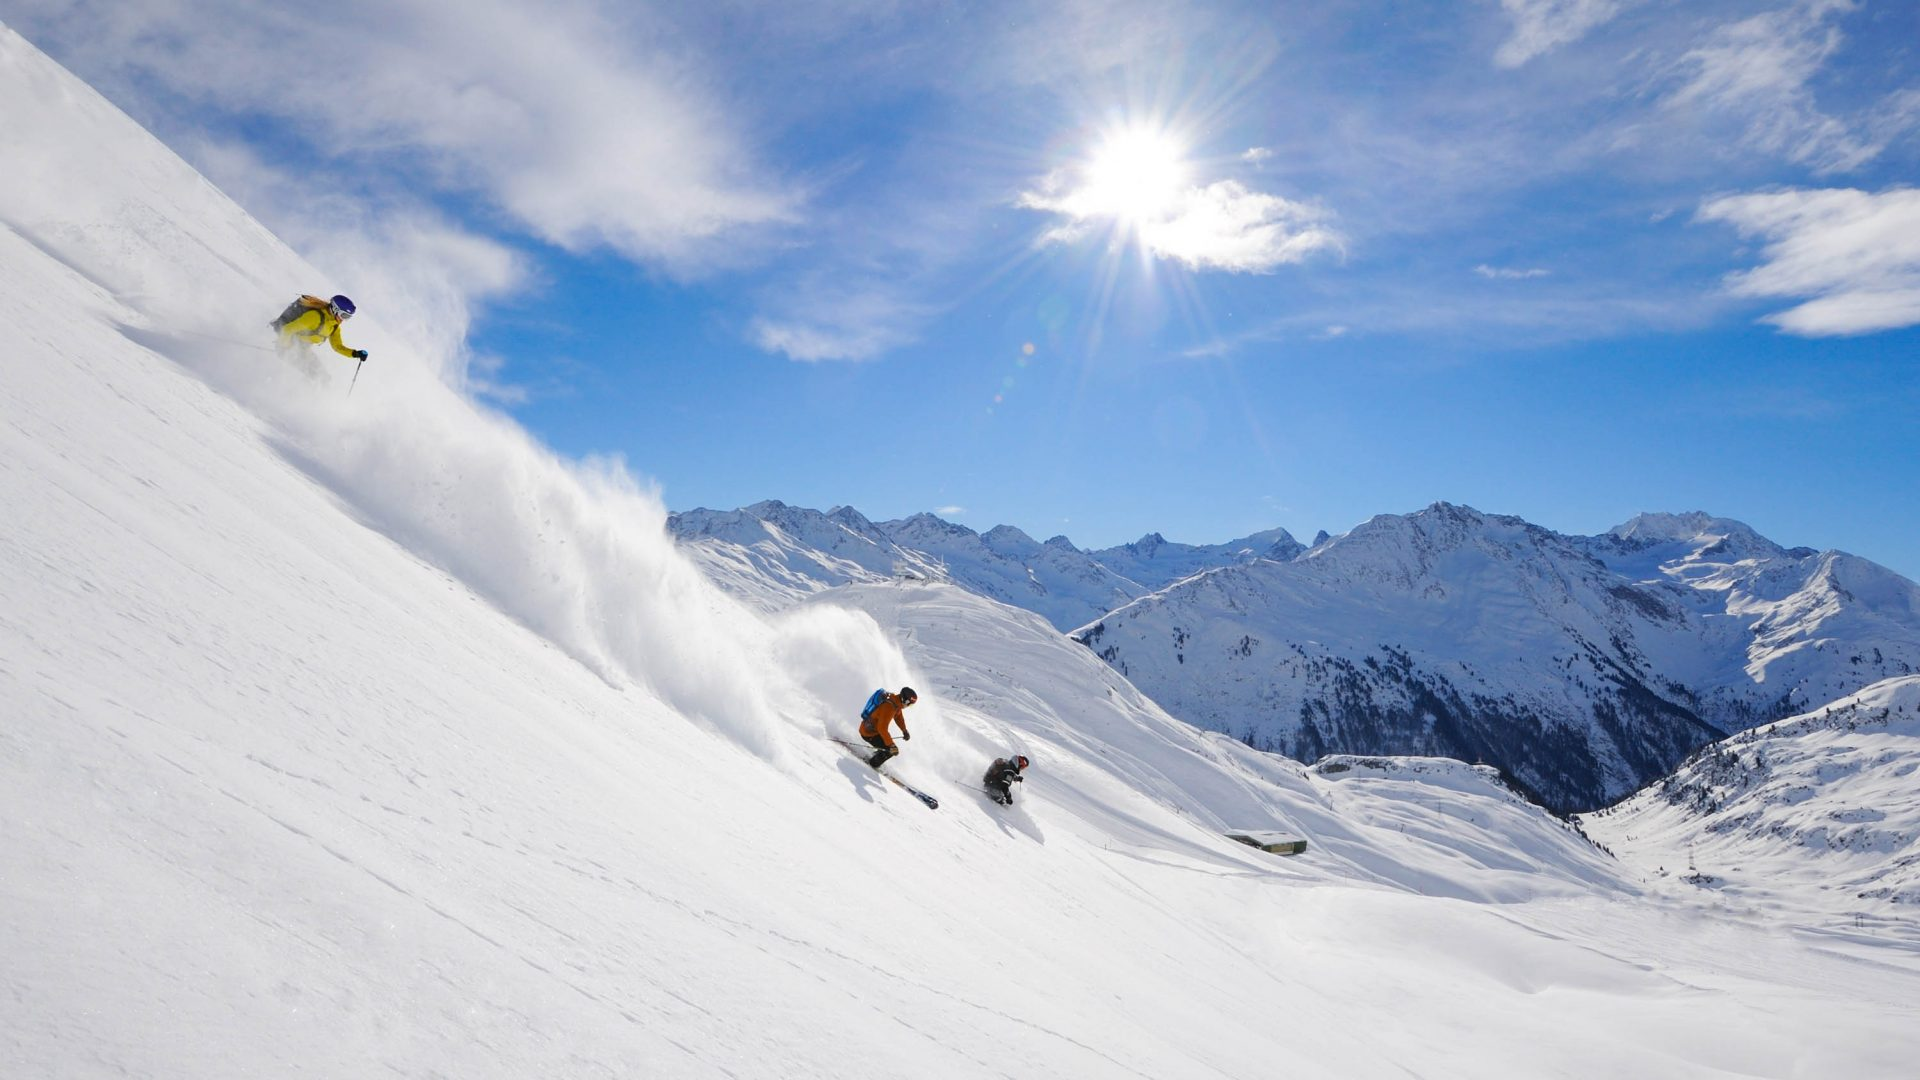 Male-dominated slopes? When it comes to adventure, gender is irrelevant